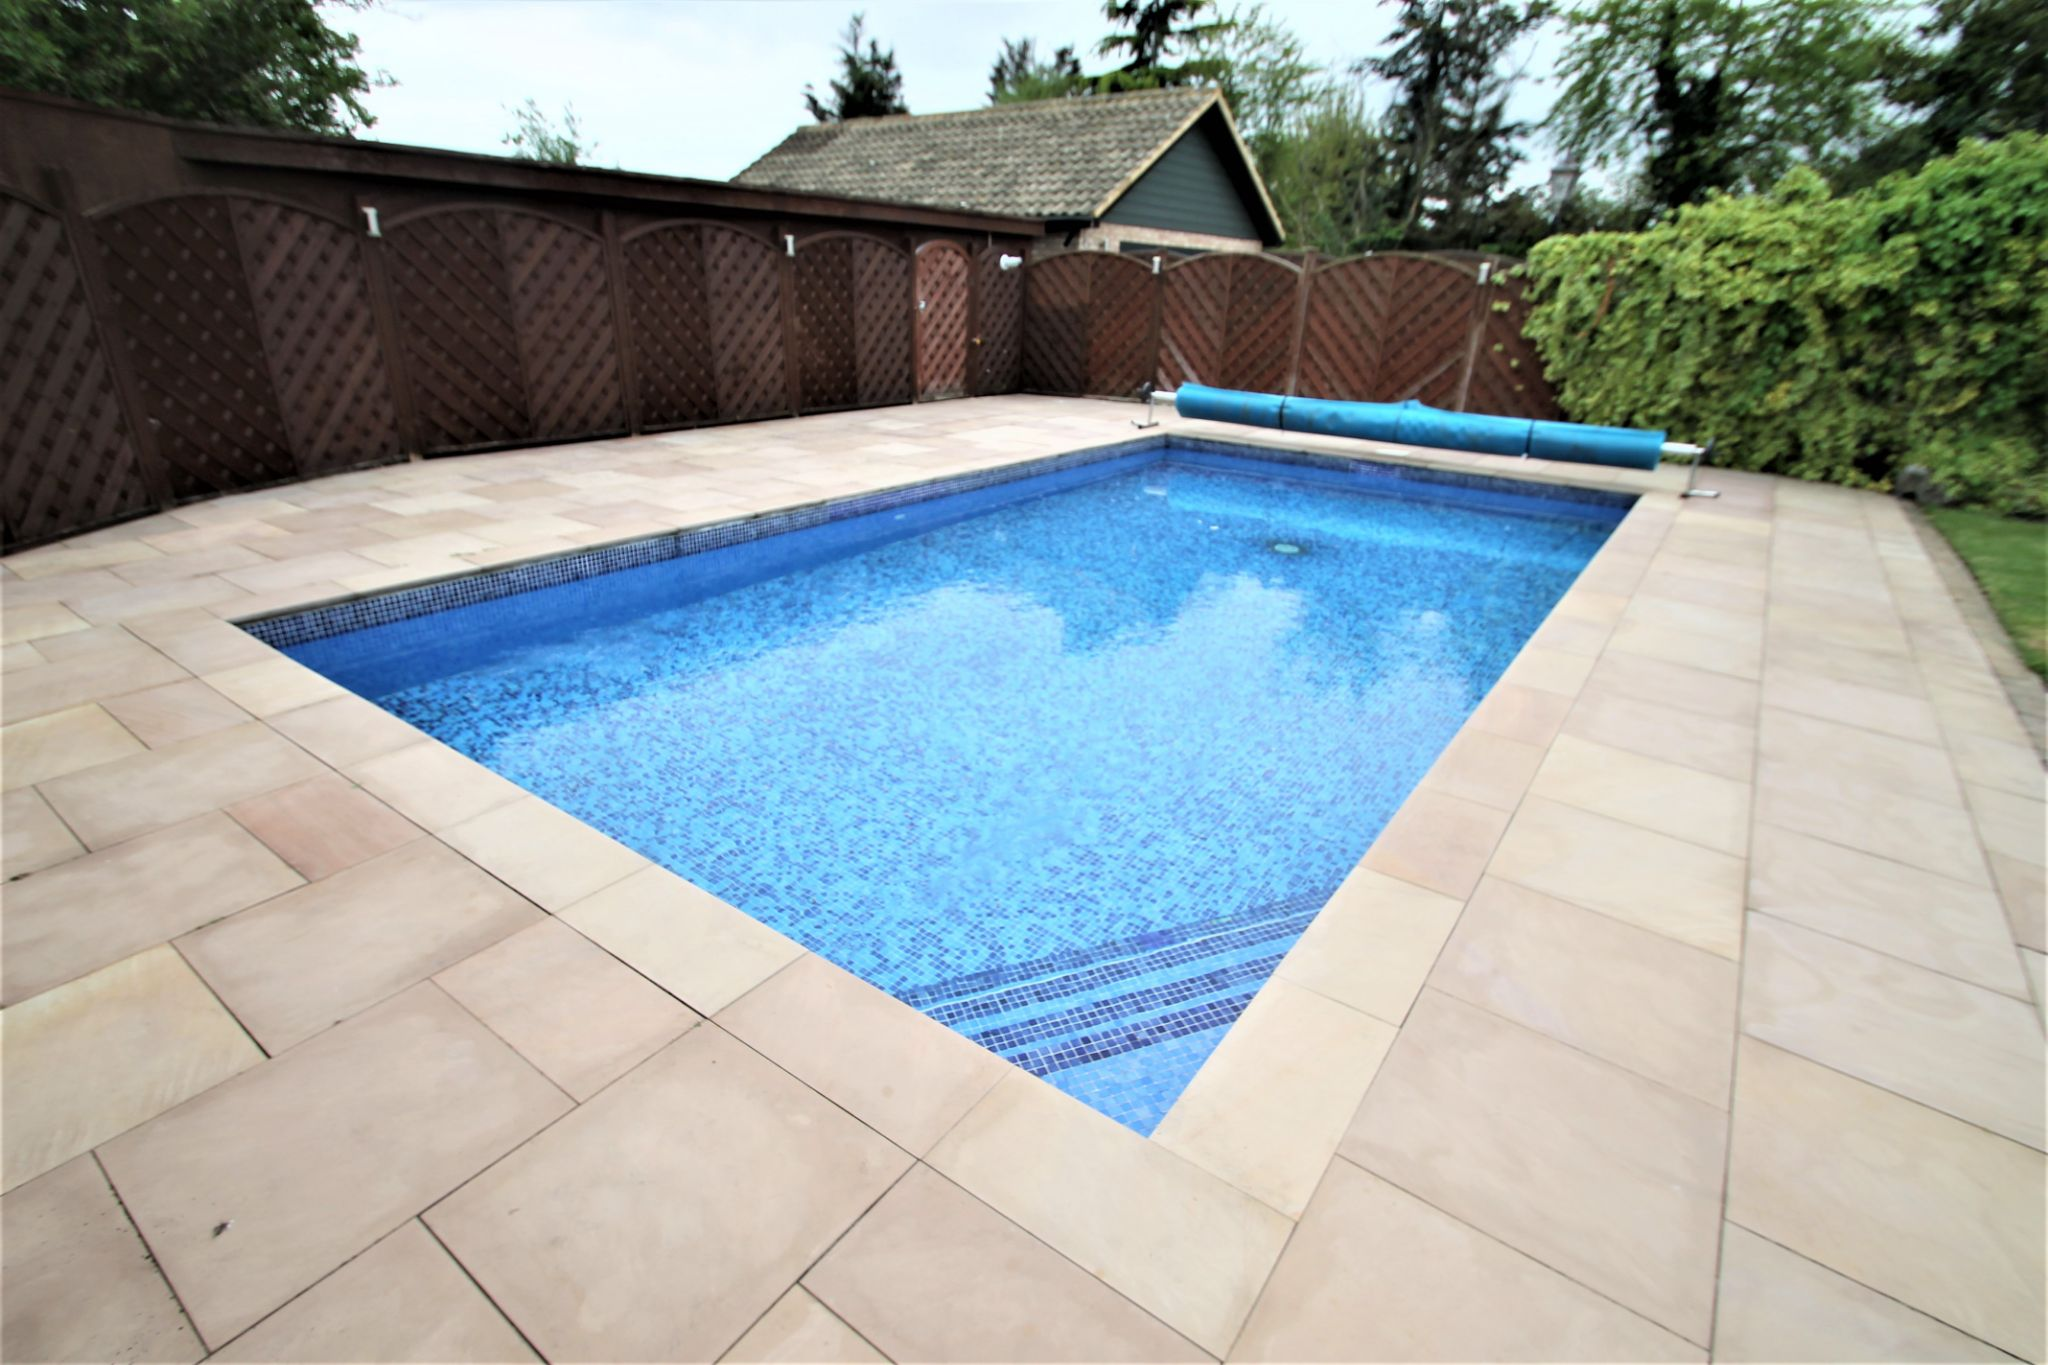 5 Bedroom Detached House For Sale - Swimming Pool